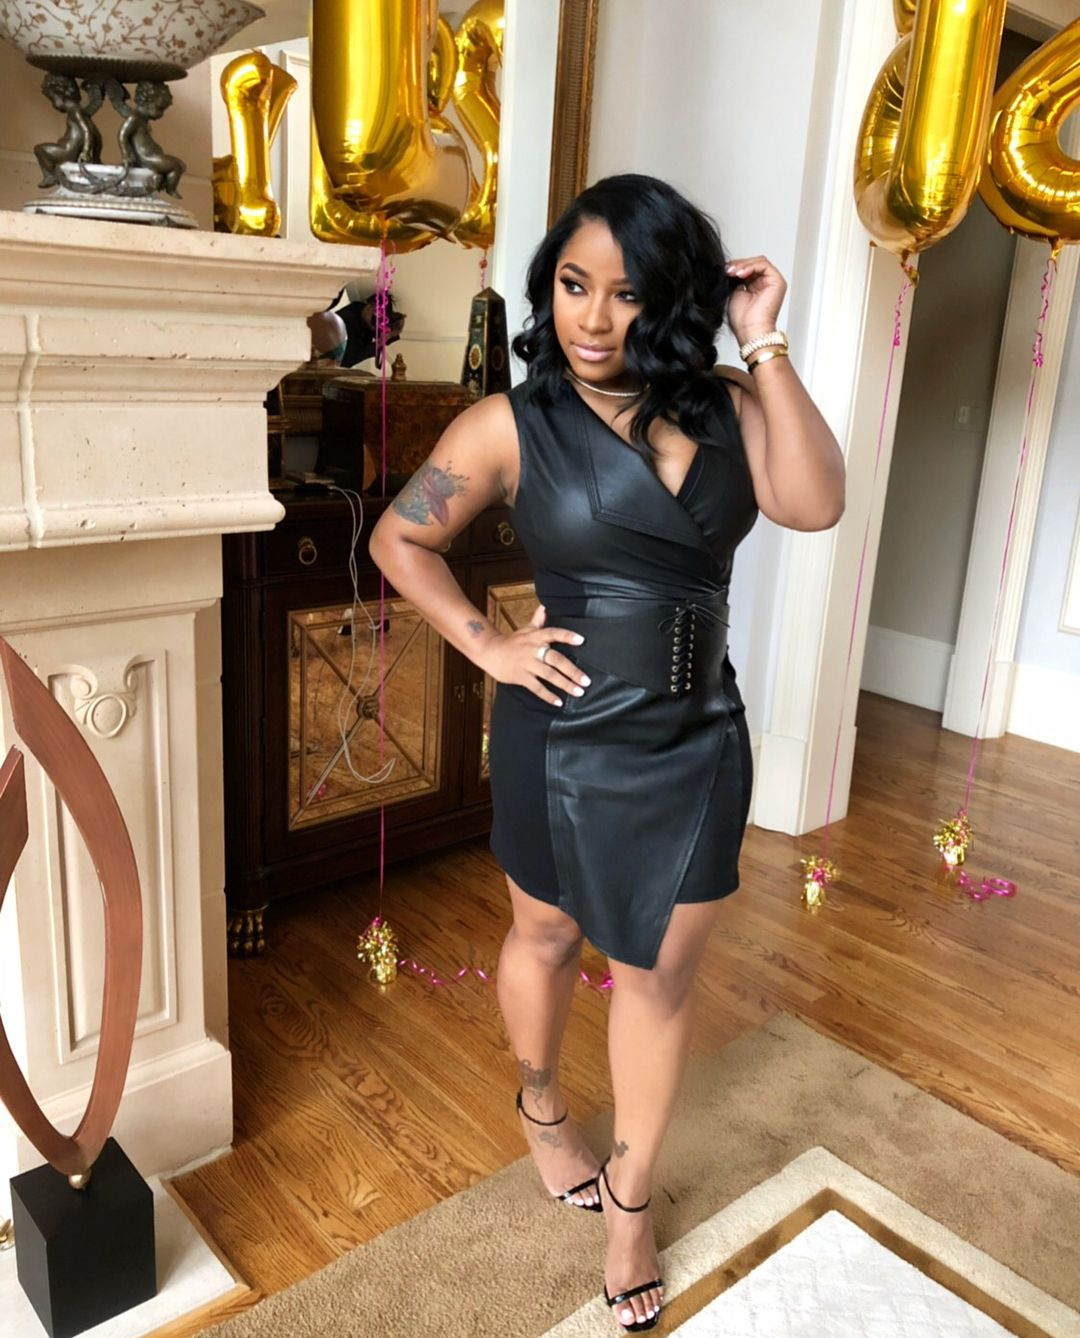 Toya Johnson Breaks The Internet With This Commercial – See Her Rocking Black Lingerie!